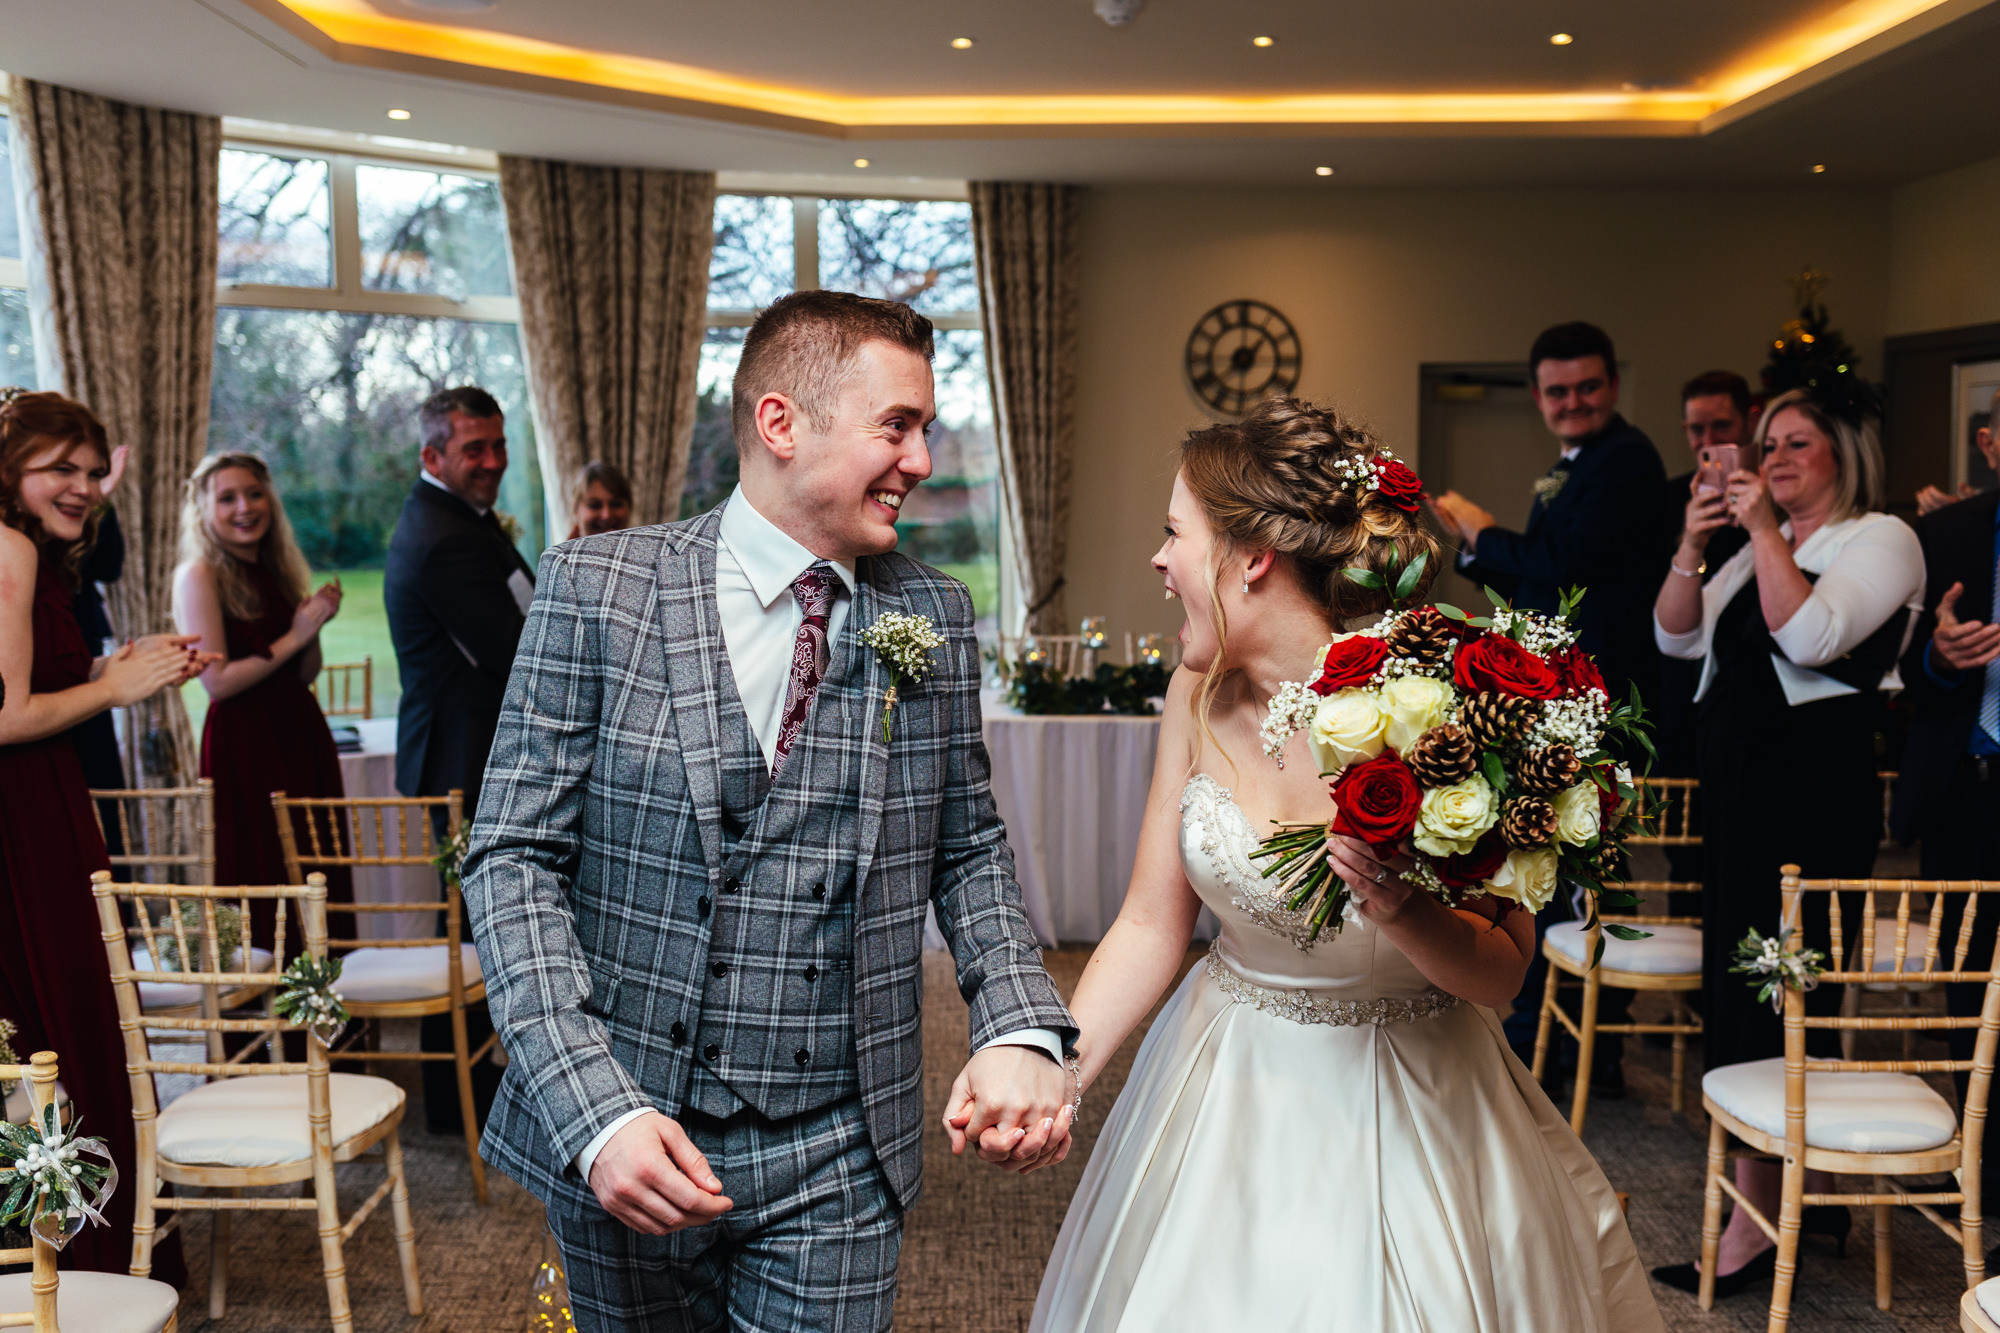 Wedding Photography Nottingham - Bride and groom leaving ceremony laughing together